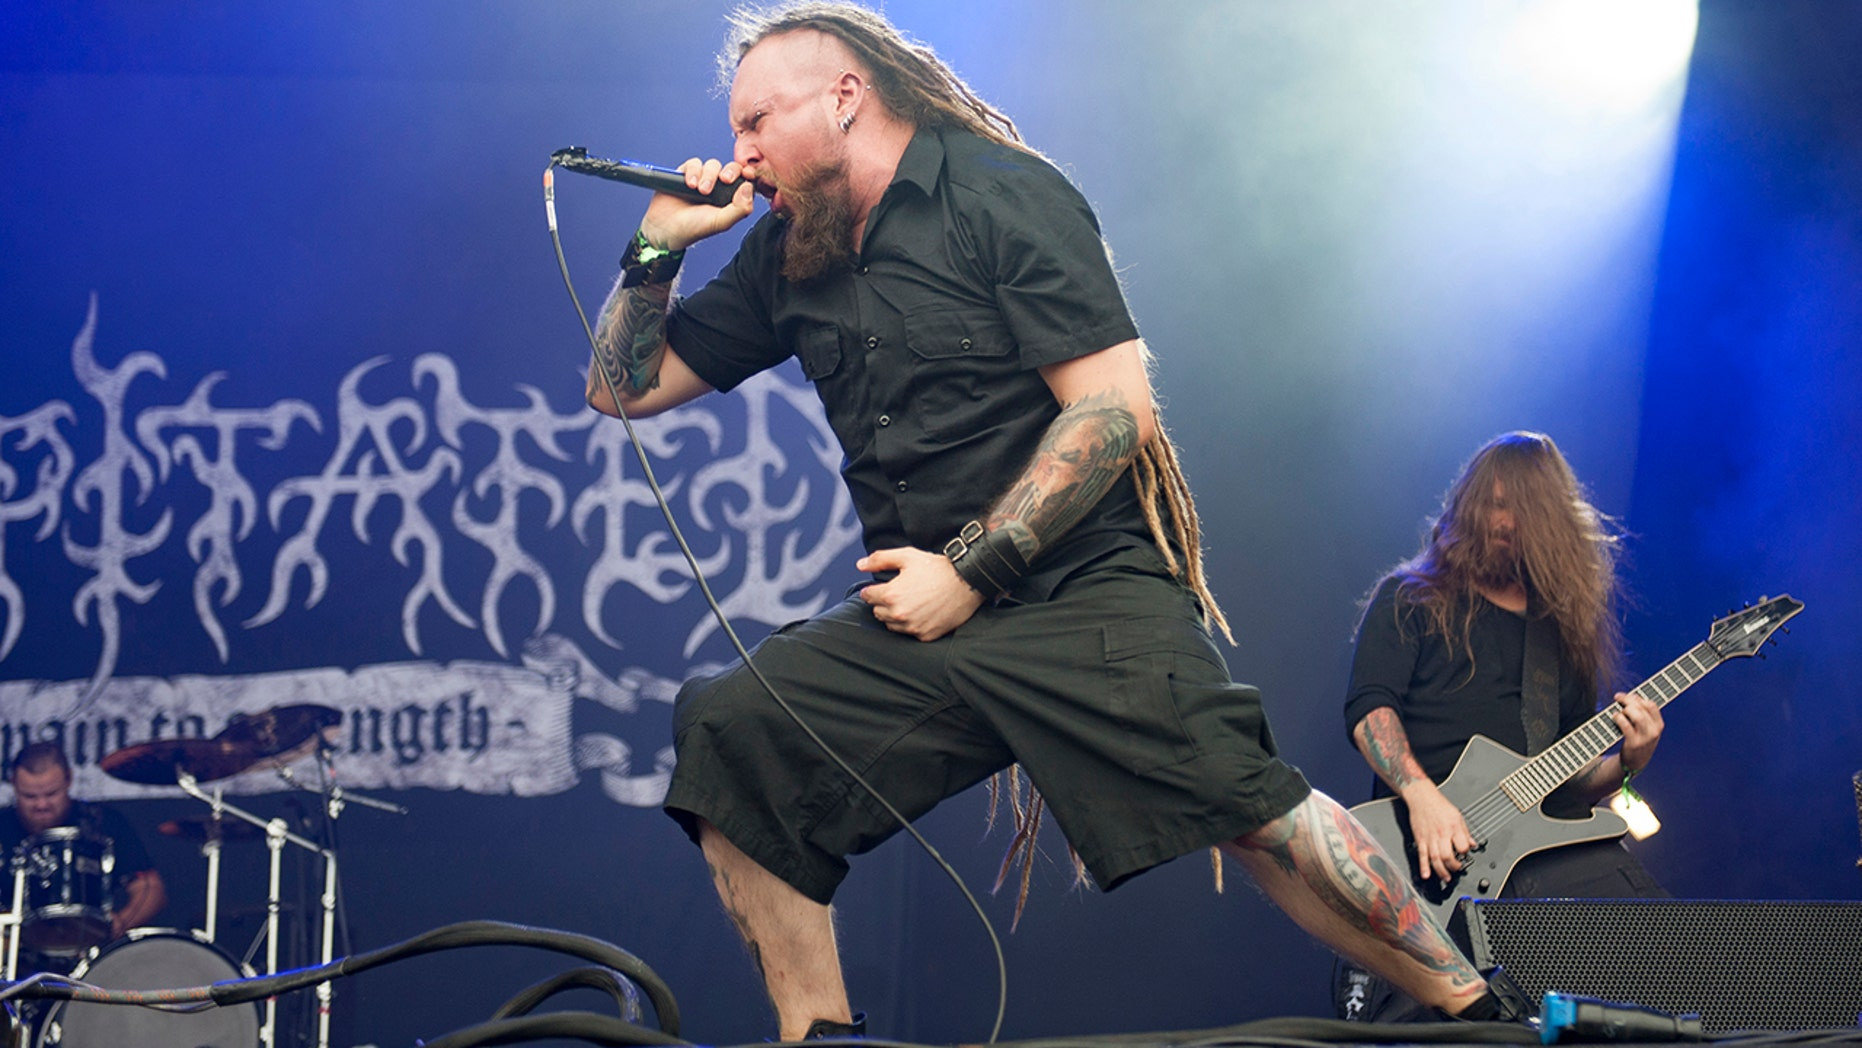 Rafal Piotrowski of Decapitated performing live on stage on day 1 at Bloodstock Festival at Catton Hall on August 11, 2017 in Burton Upon Trent, England.  (Photo by Katja Ogrin/Redferns)